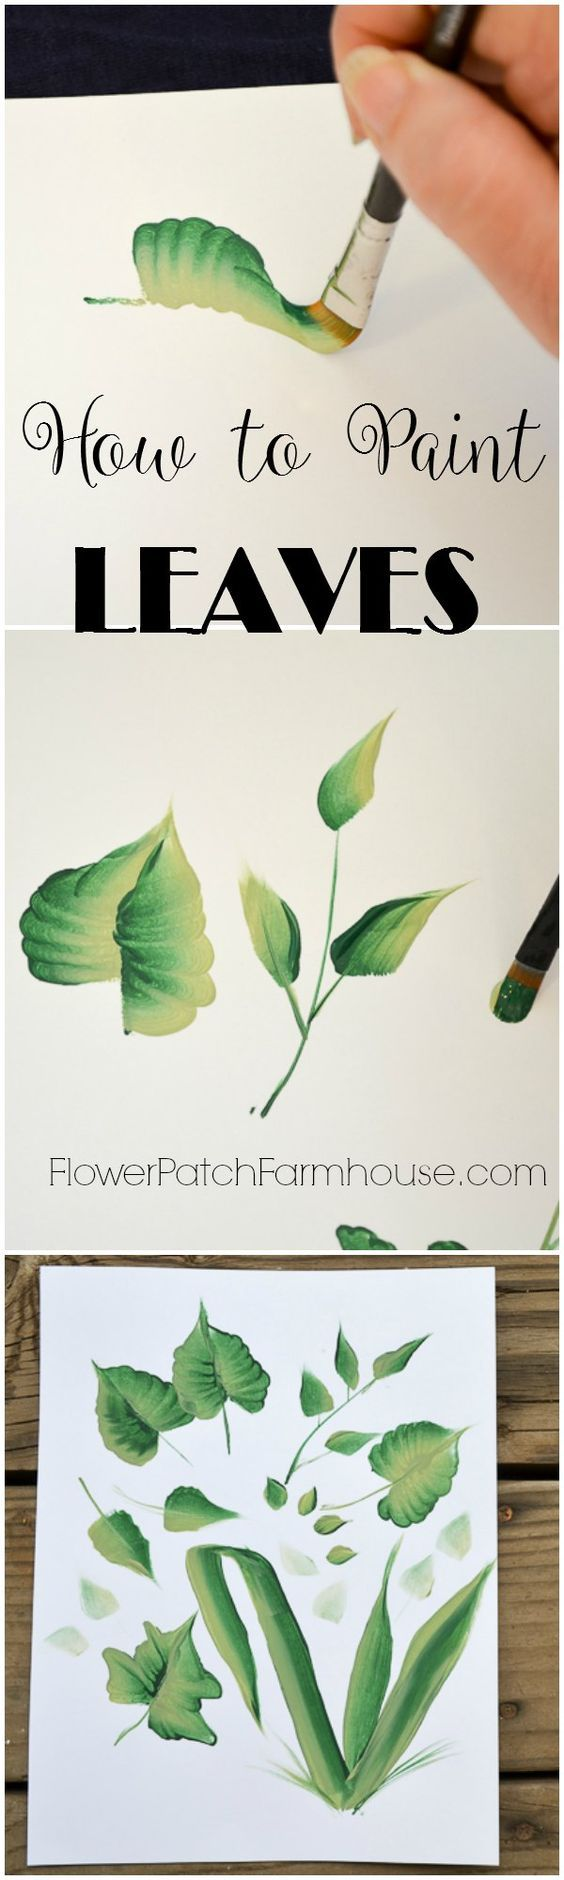 Simple Painted Leaves for Your Wall.